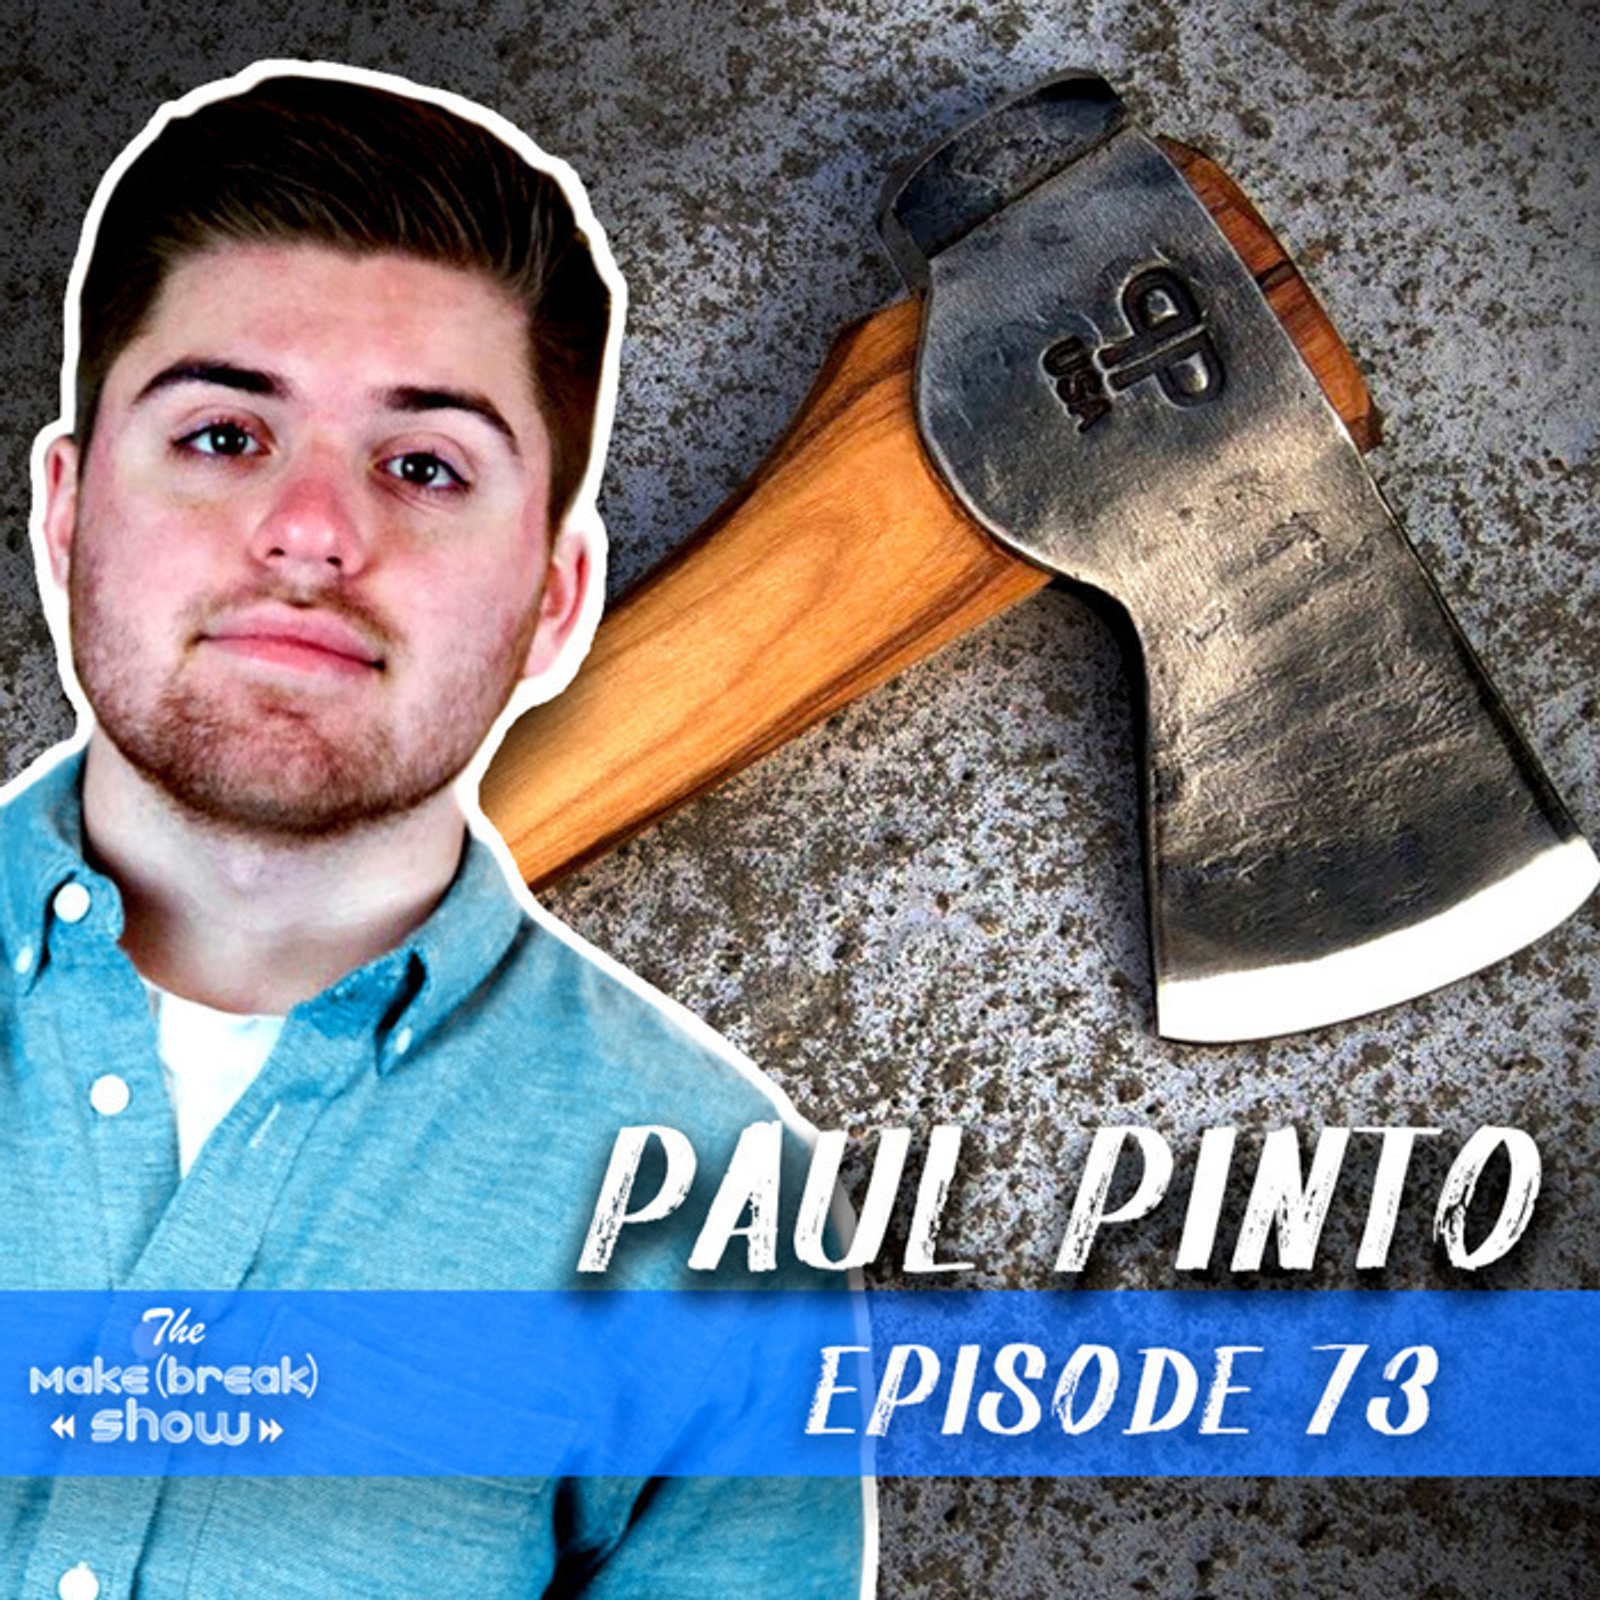 This week we chat with up and coming blacksmith Paul Pinto. Find out how Paul got started and what it's like to build your own hydraulic press!